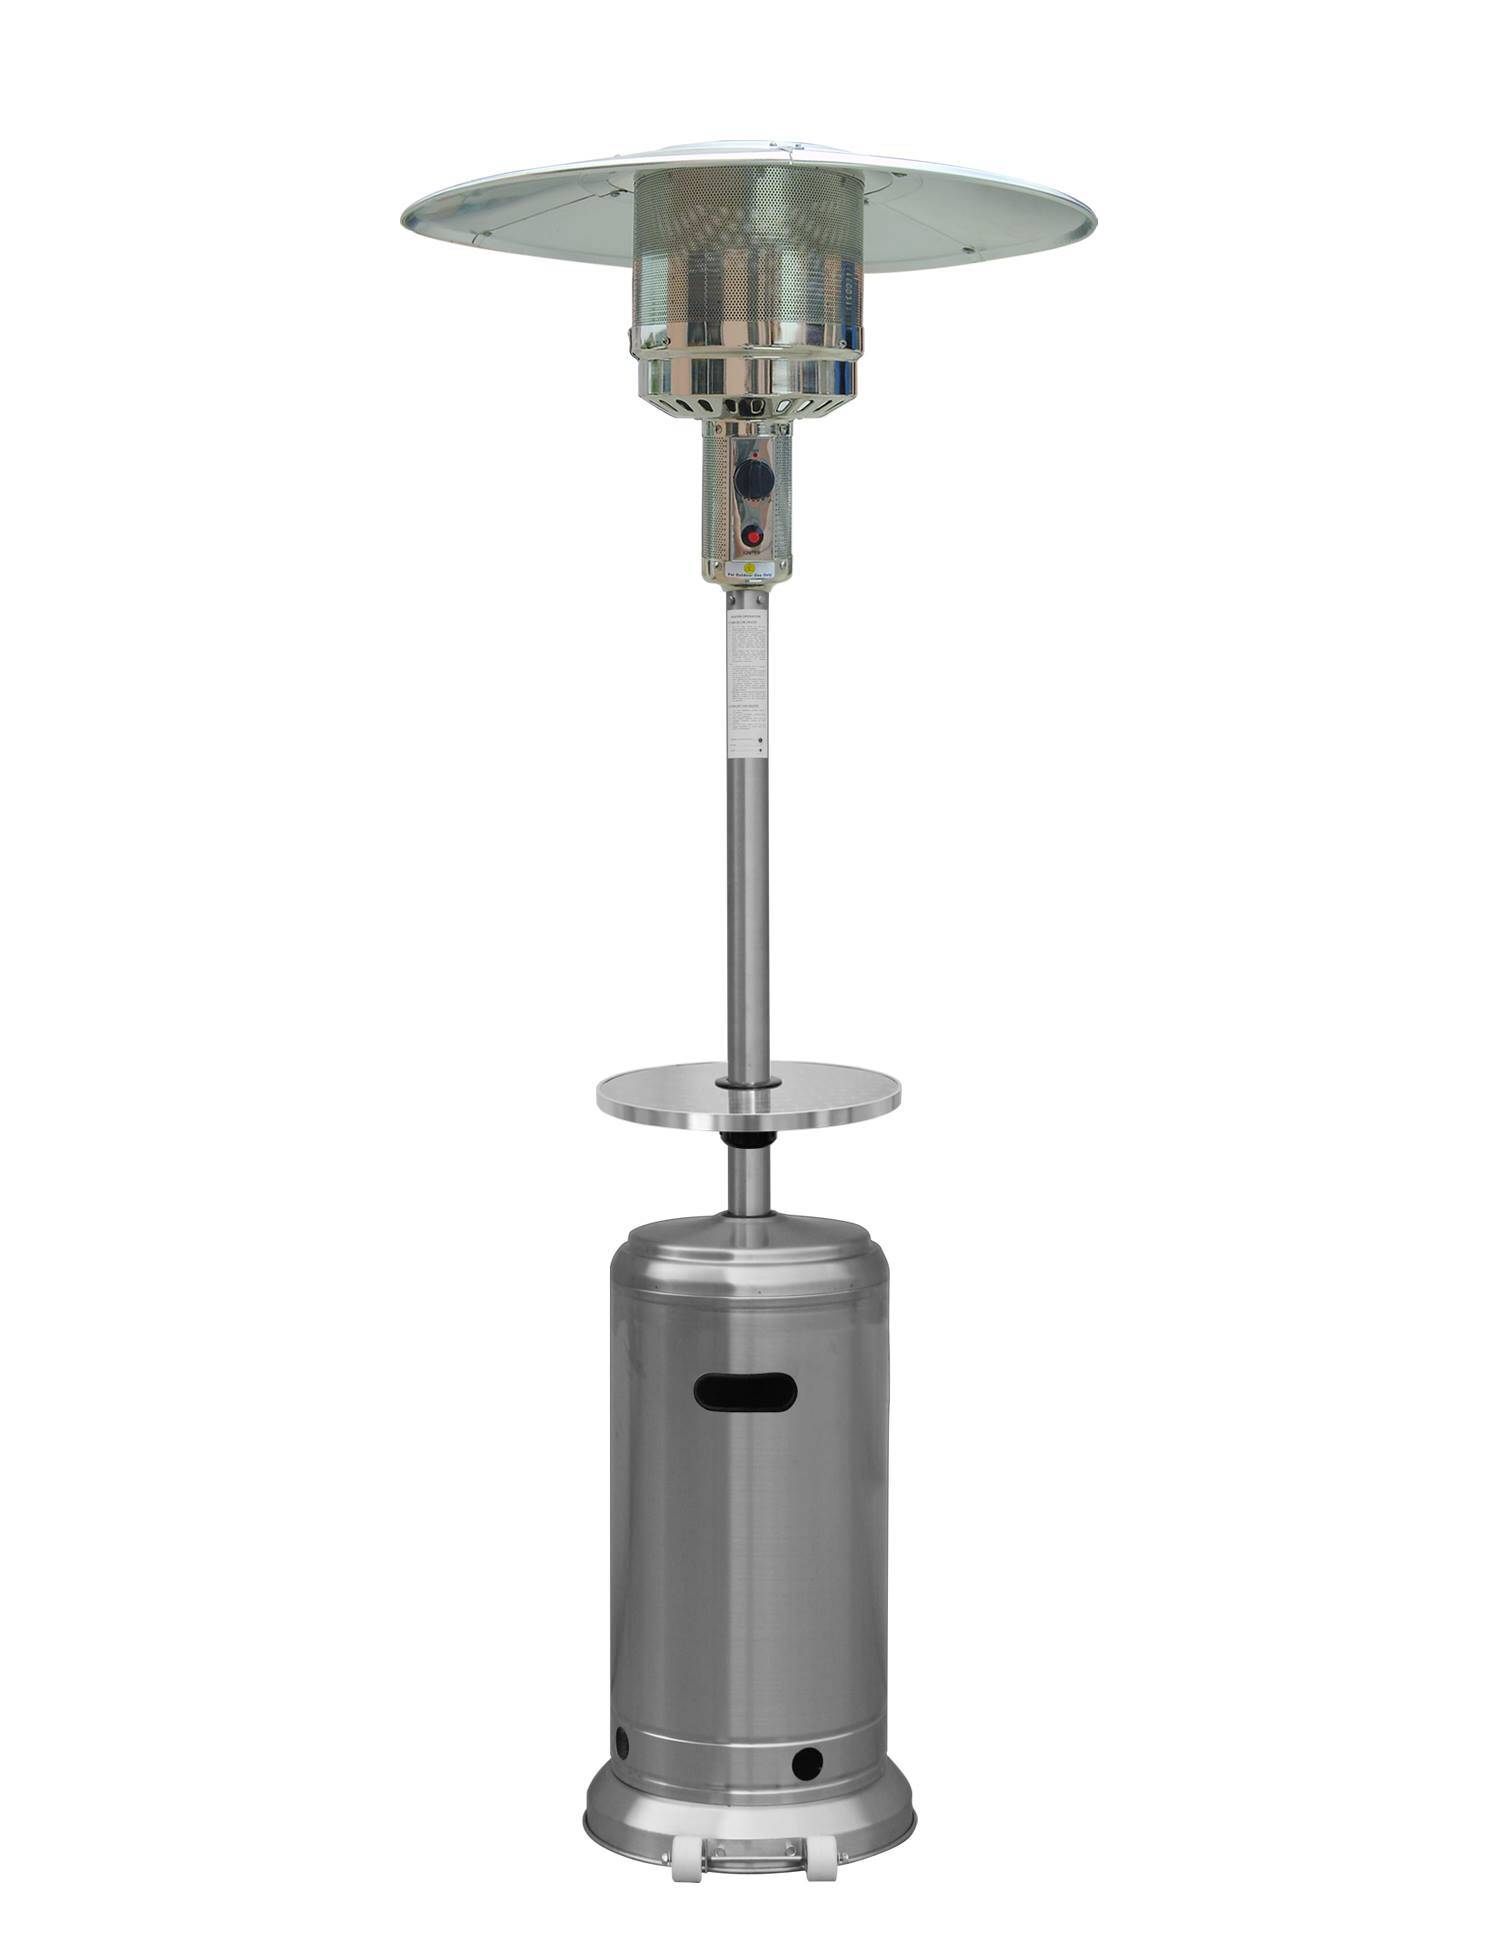 87″ Tall Stainless Steel Outdoor Patio Heater with Table – The